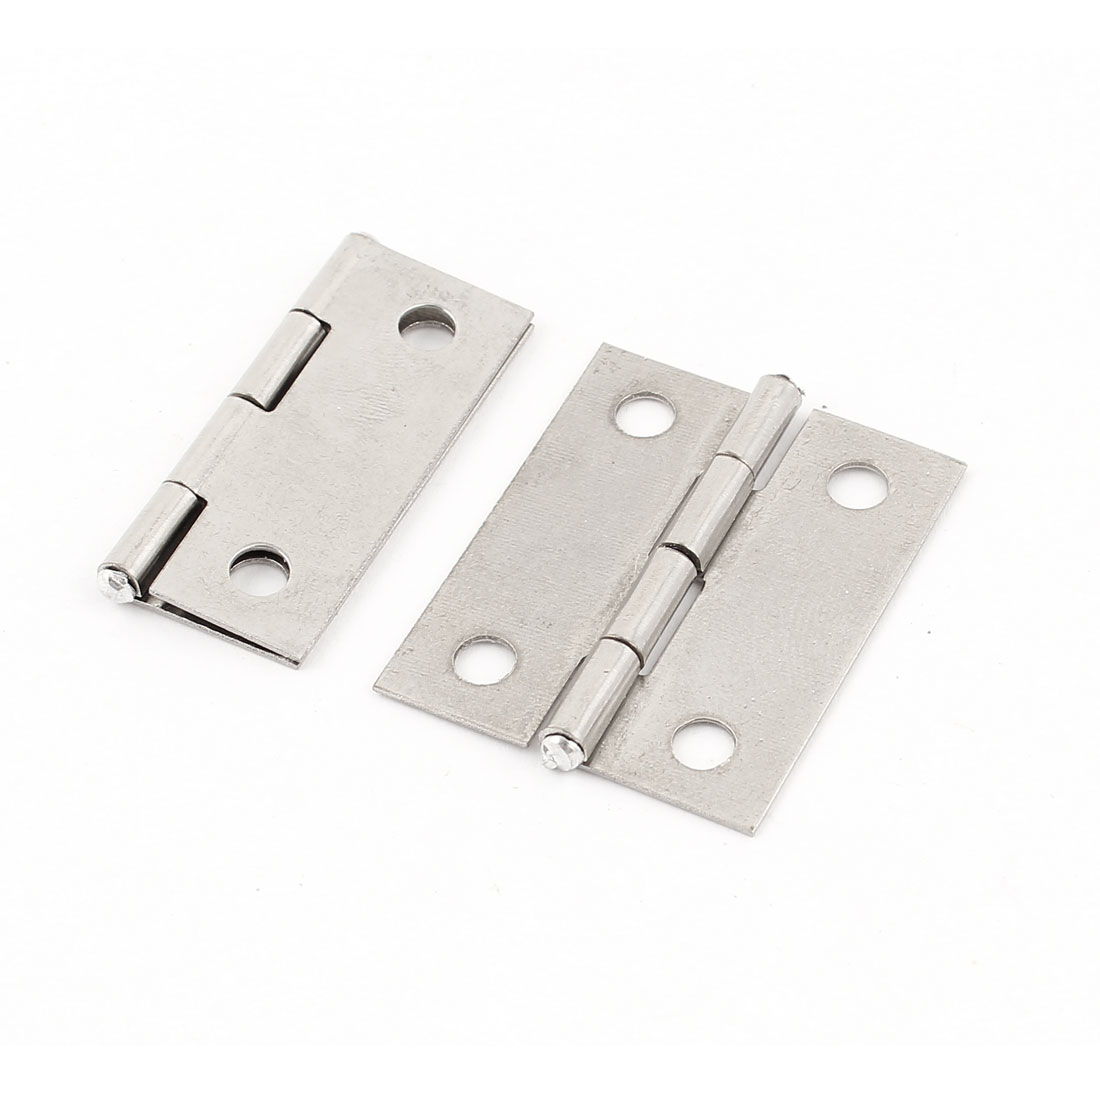 "2 Pcs Stainless Steel Butt Cabinet Gate Closet Door Hinge Silver Tone 1.4"" Long"